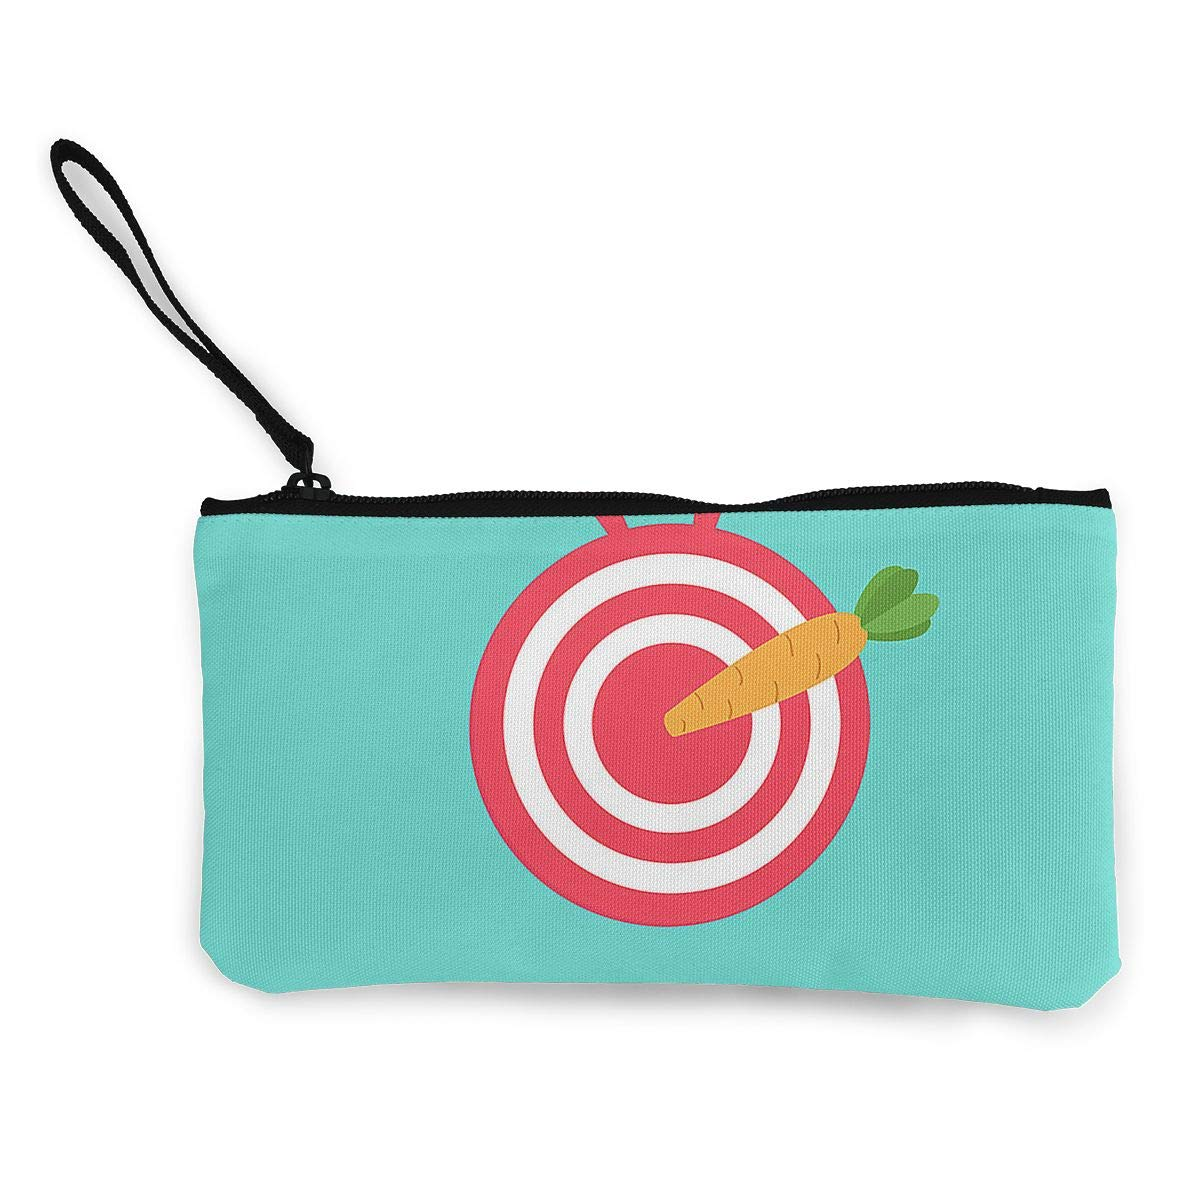 Maple Memories Easter Carrot Eggs Portable Canvas Coin Purse Change Purse Pouch Mini Wallet Gifts For Women Girls